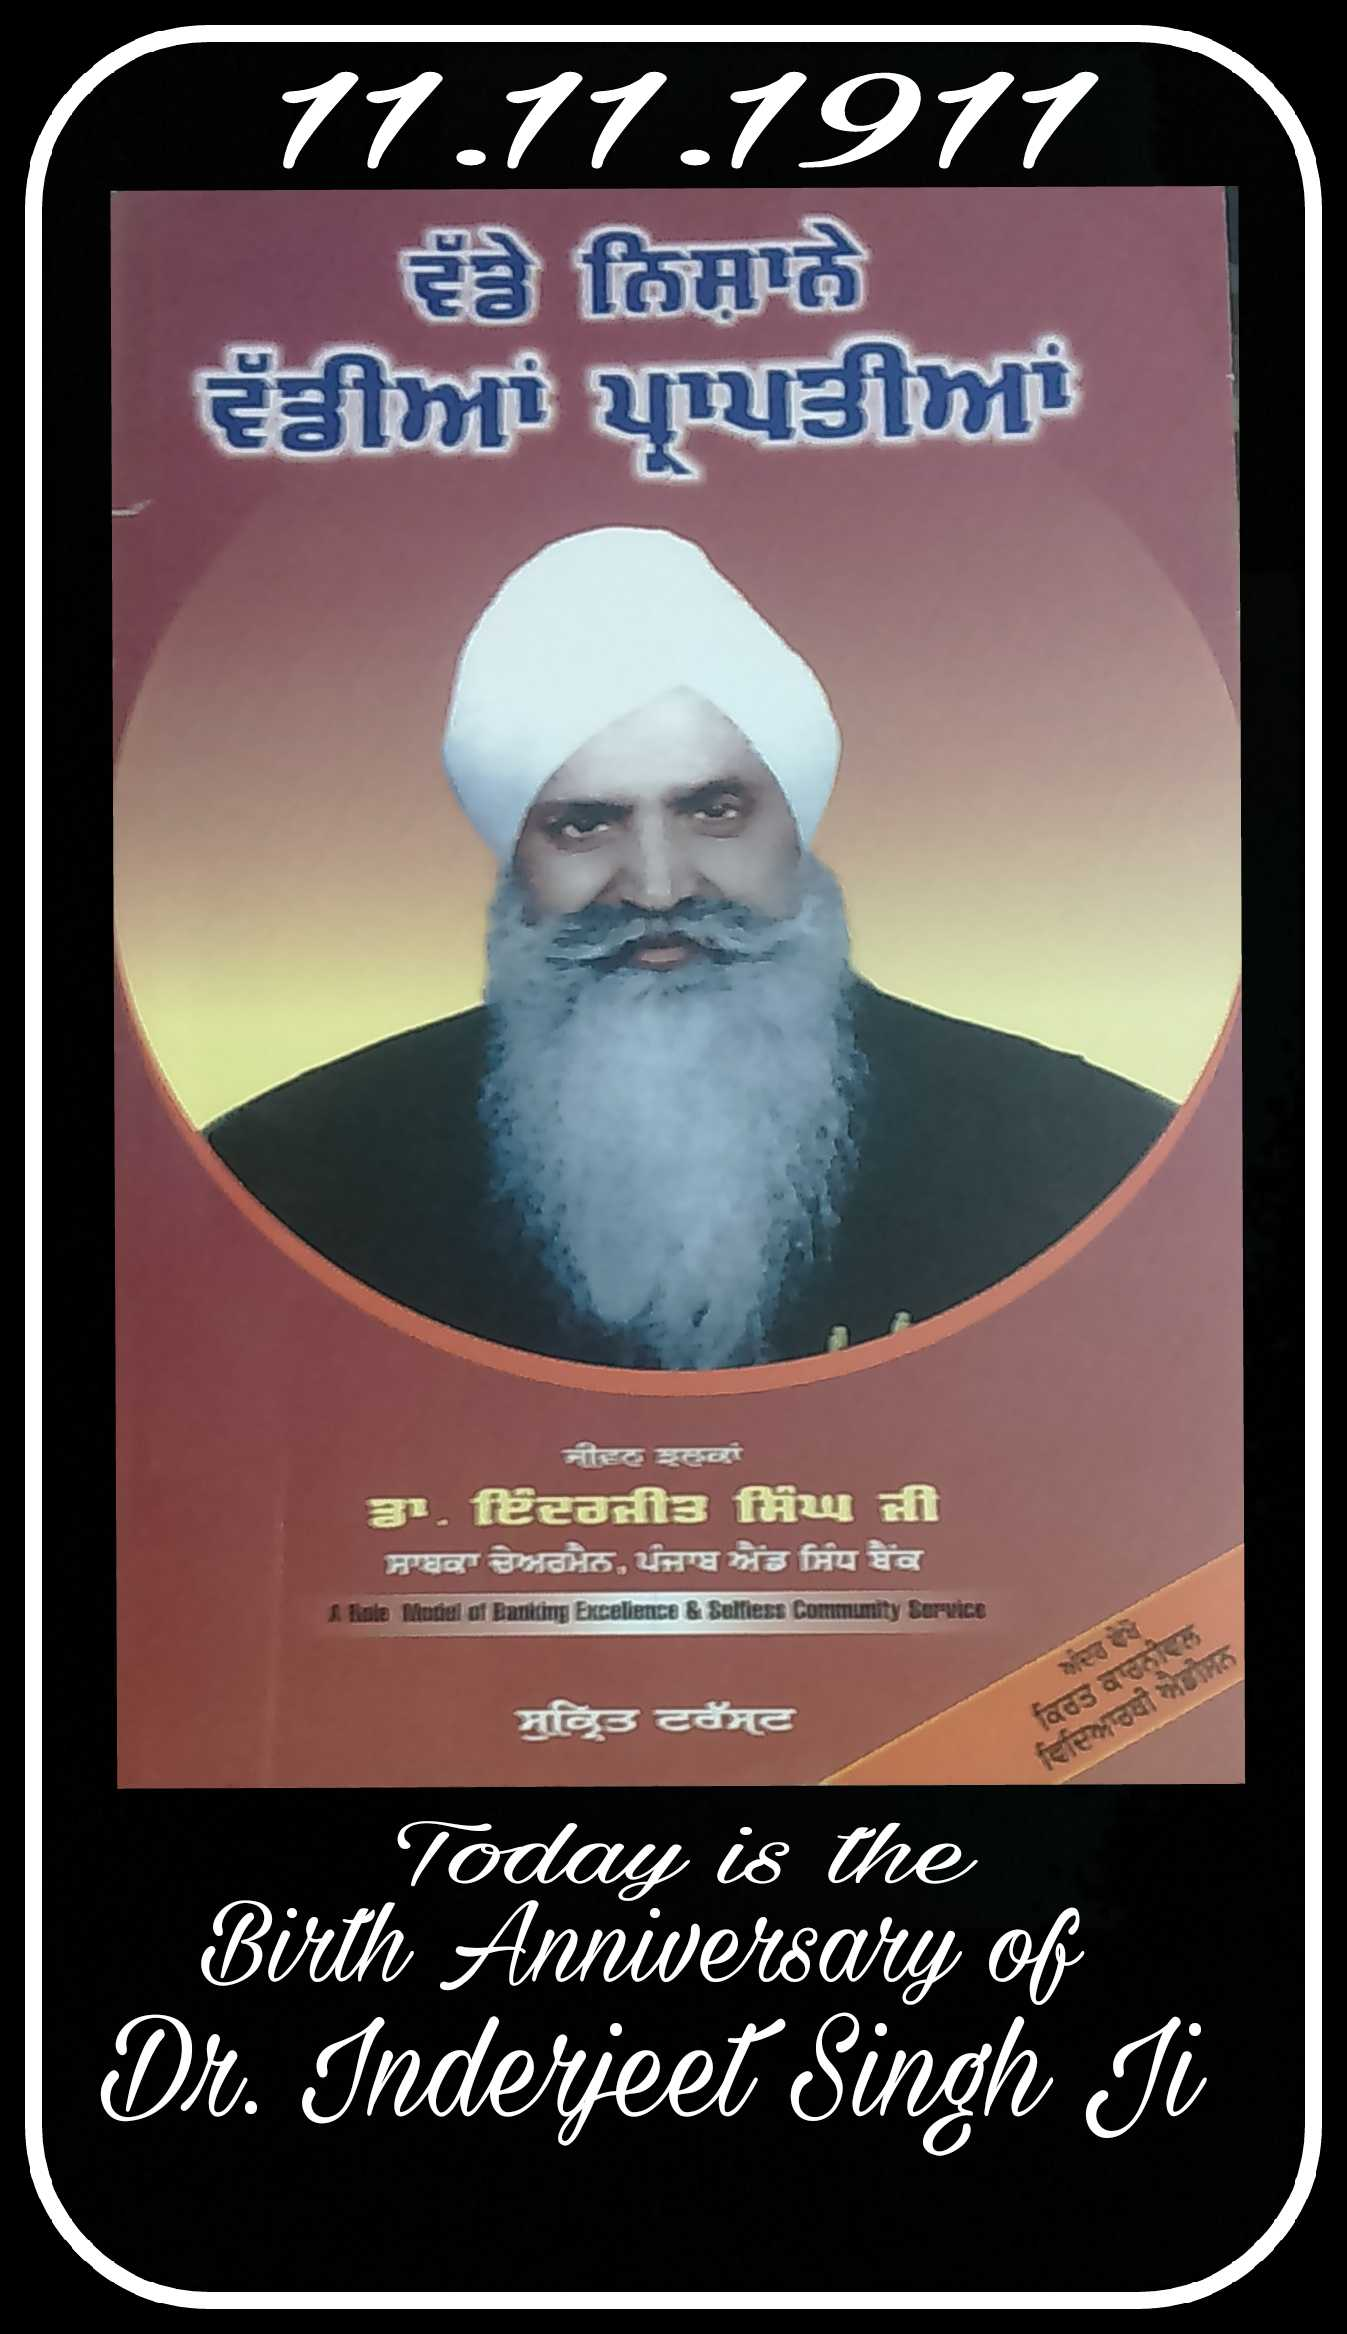 Today is the birth anniversary of Dr. Inderjeet Singh Ji of PSB - A Legendary Banker.